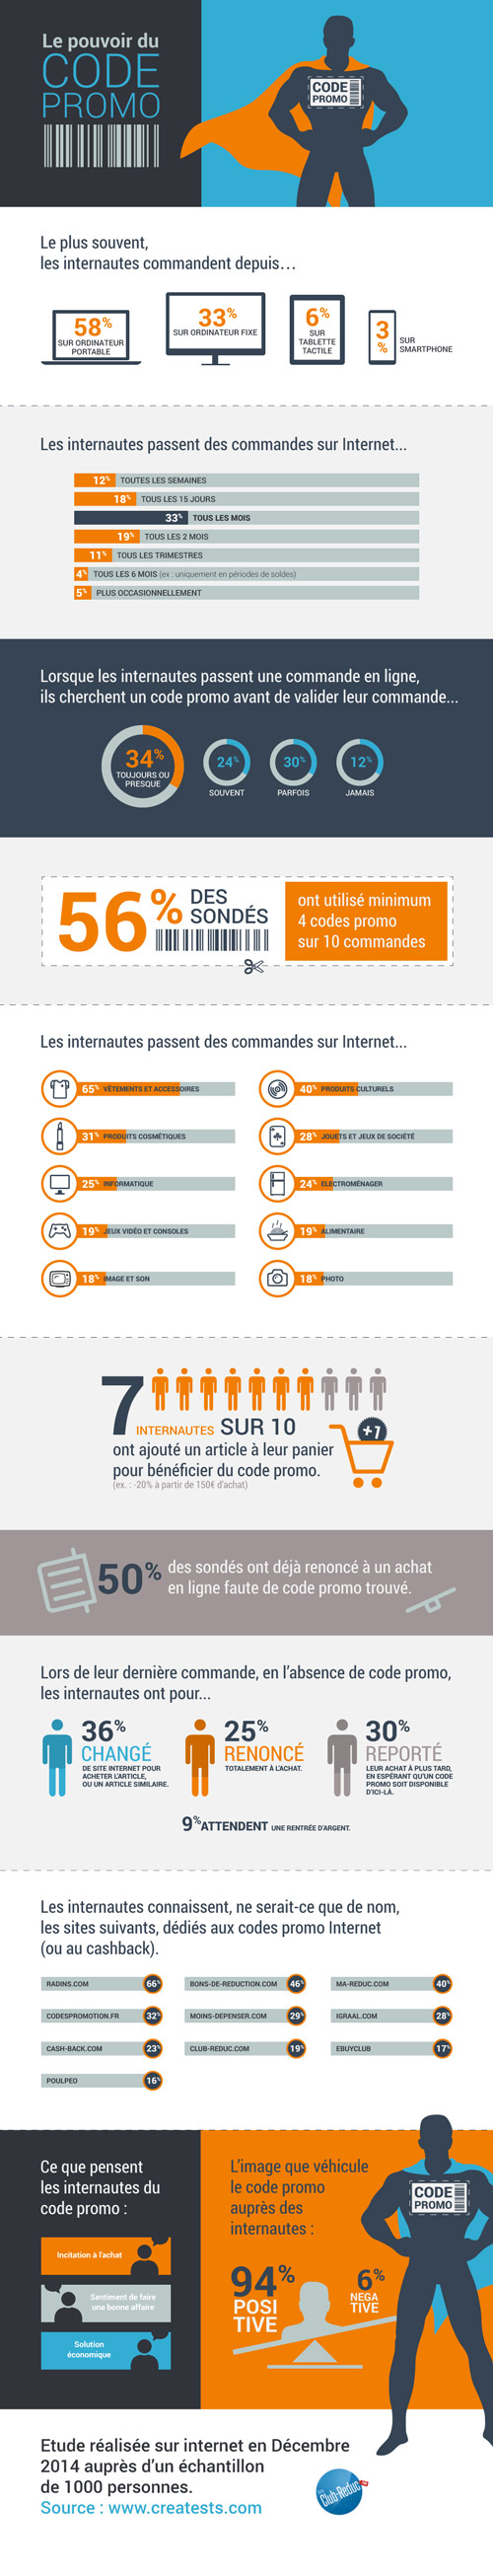 Infographie code promo